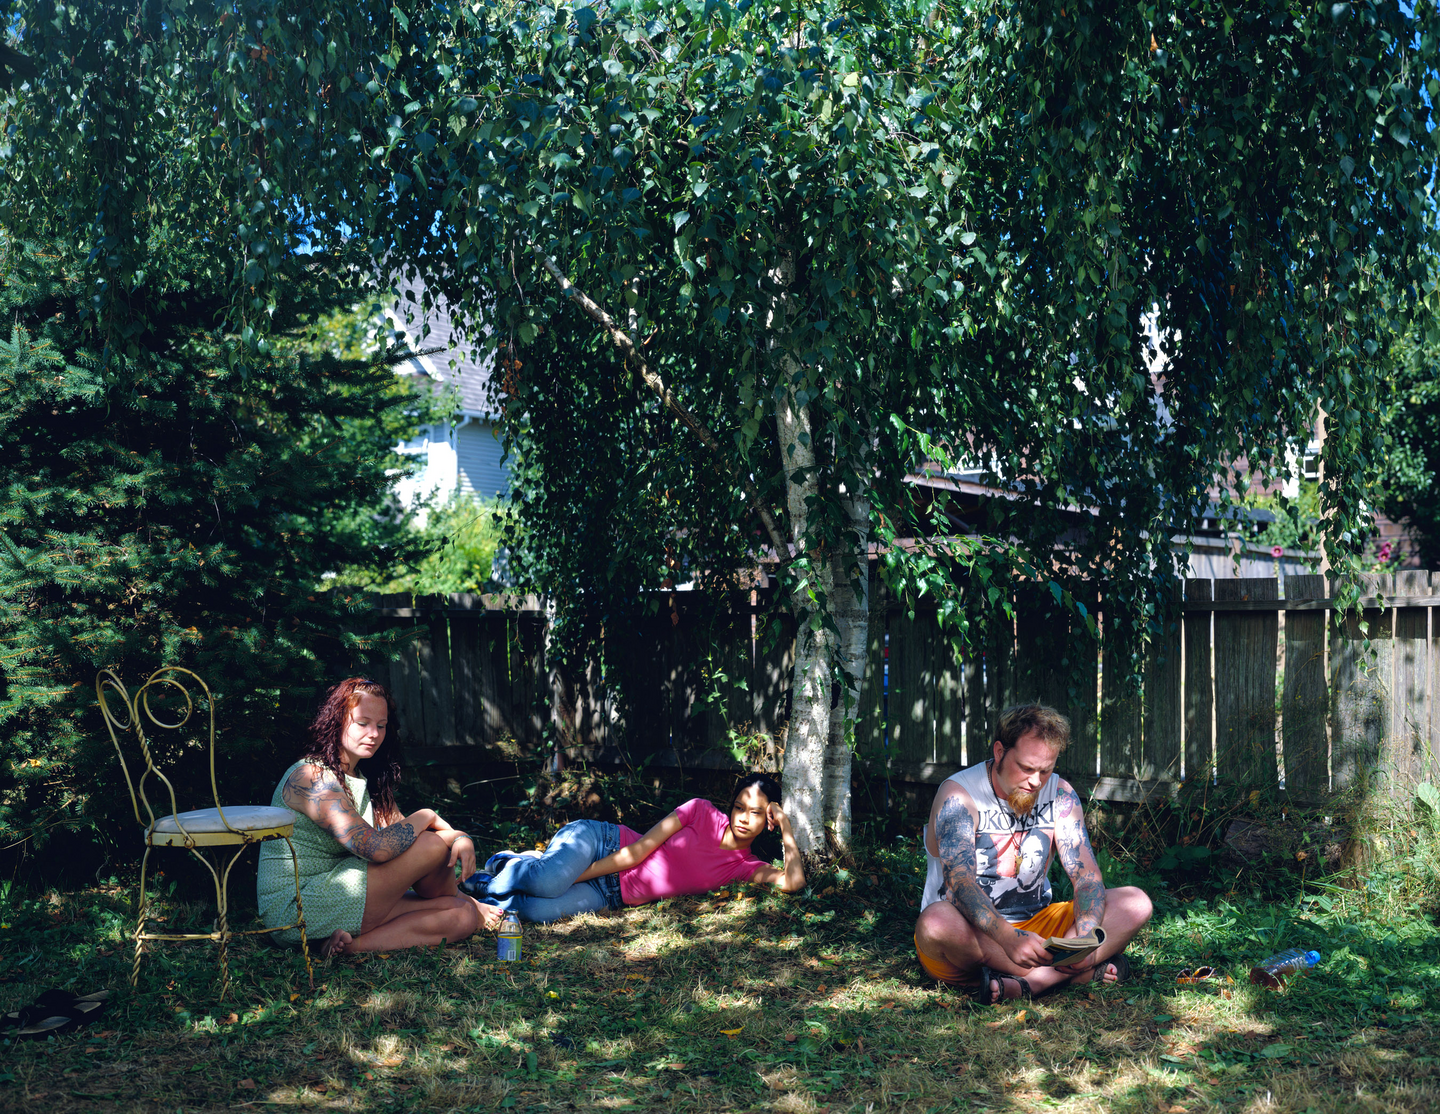 Jeff Wall . Appearance - Announcements - e-flux